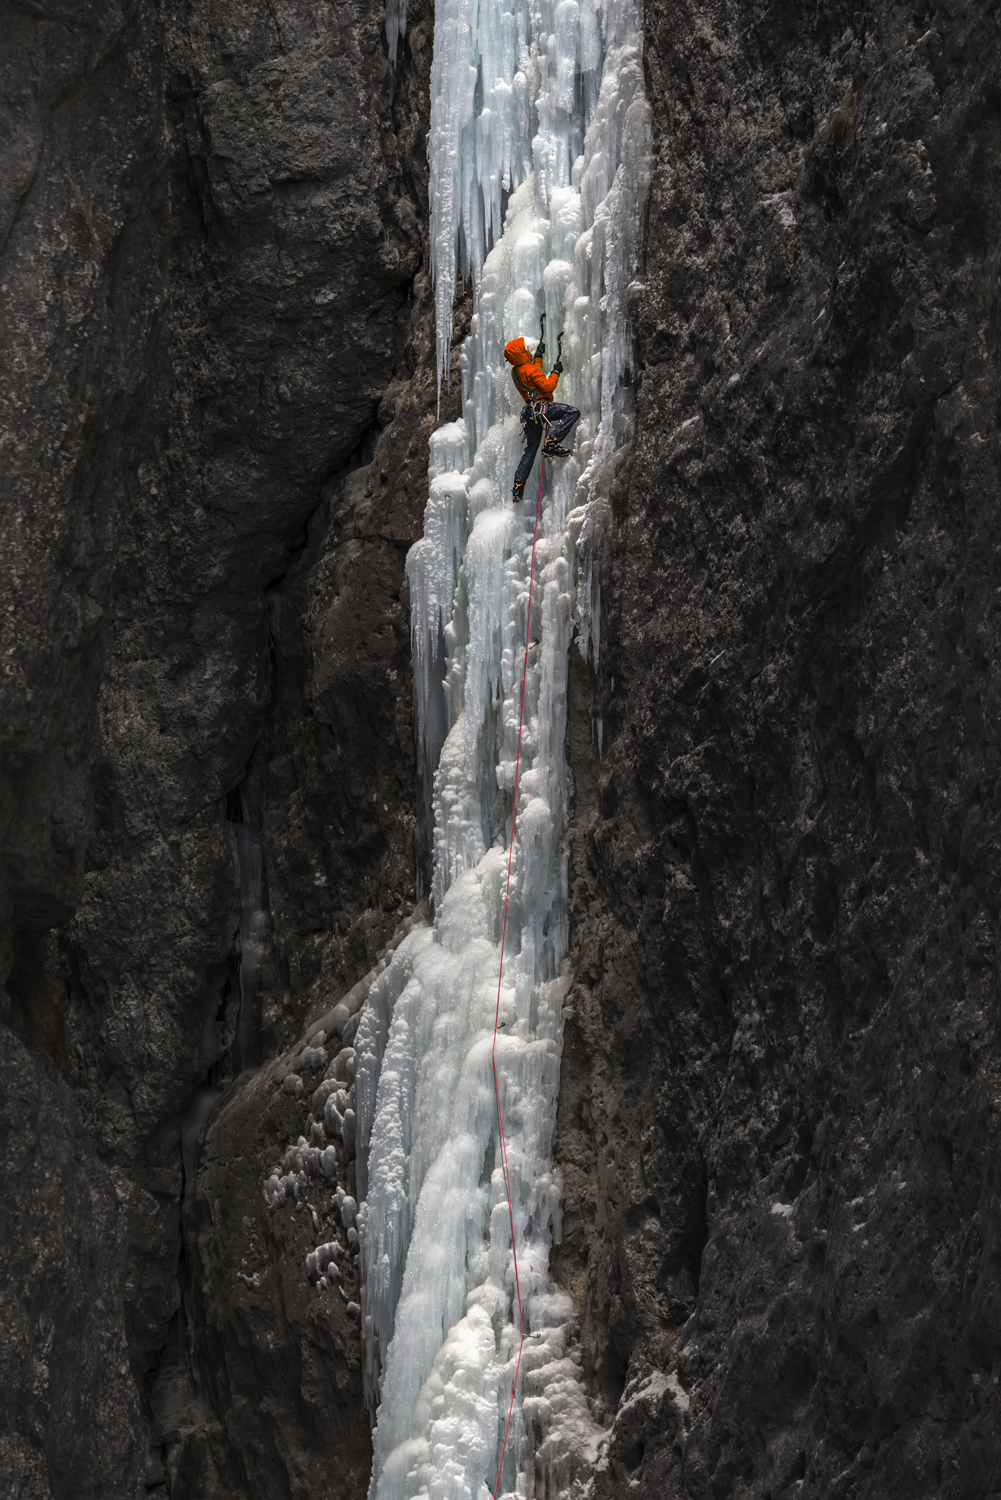 A climber on the first pitch of La Spada nella Roccia. Nikon D810, 80-400mm at 260mm, ISO 800, 1/200s at f/7.1. March. © James Rushforth.